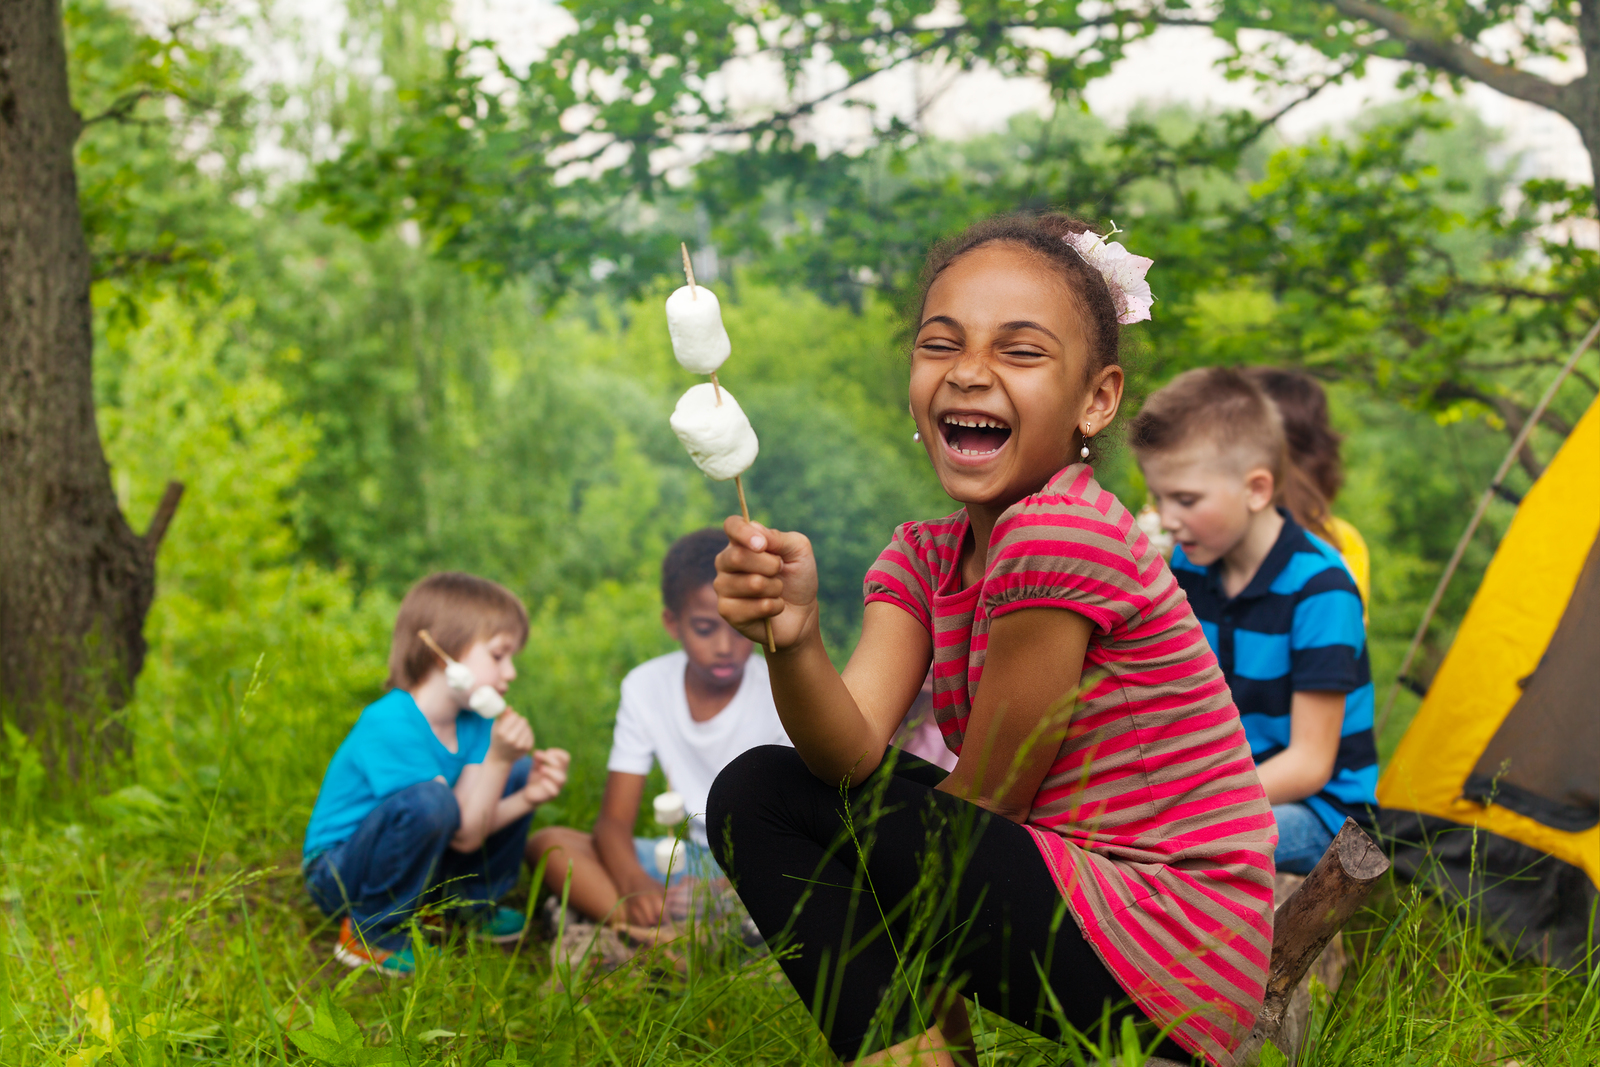 5 Things to Look For When Choosing a Summer Camp